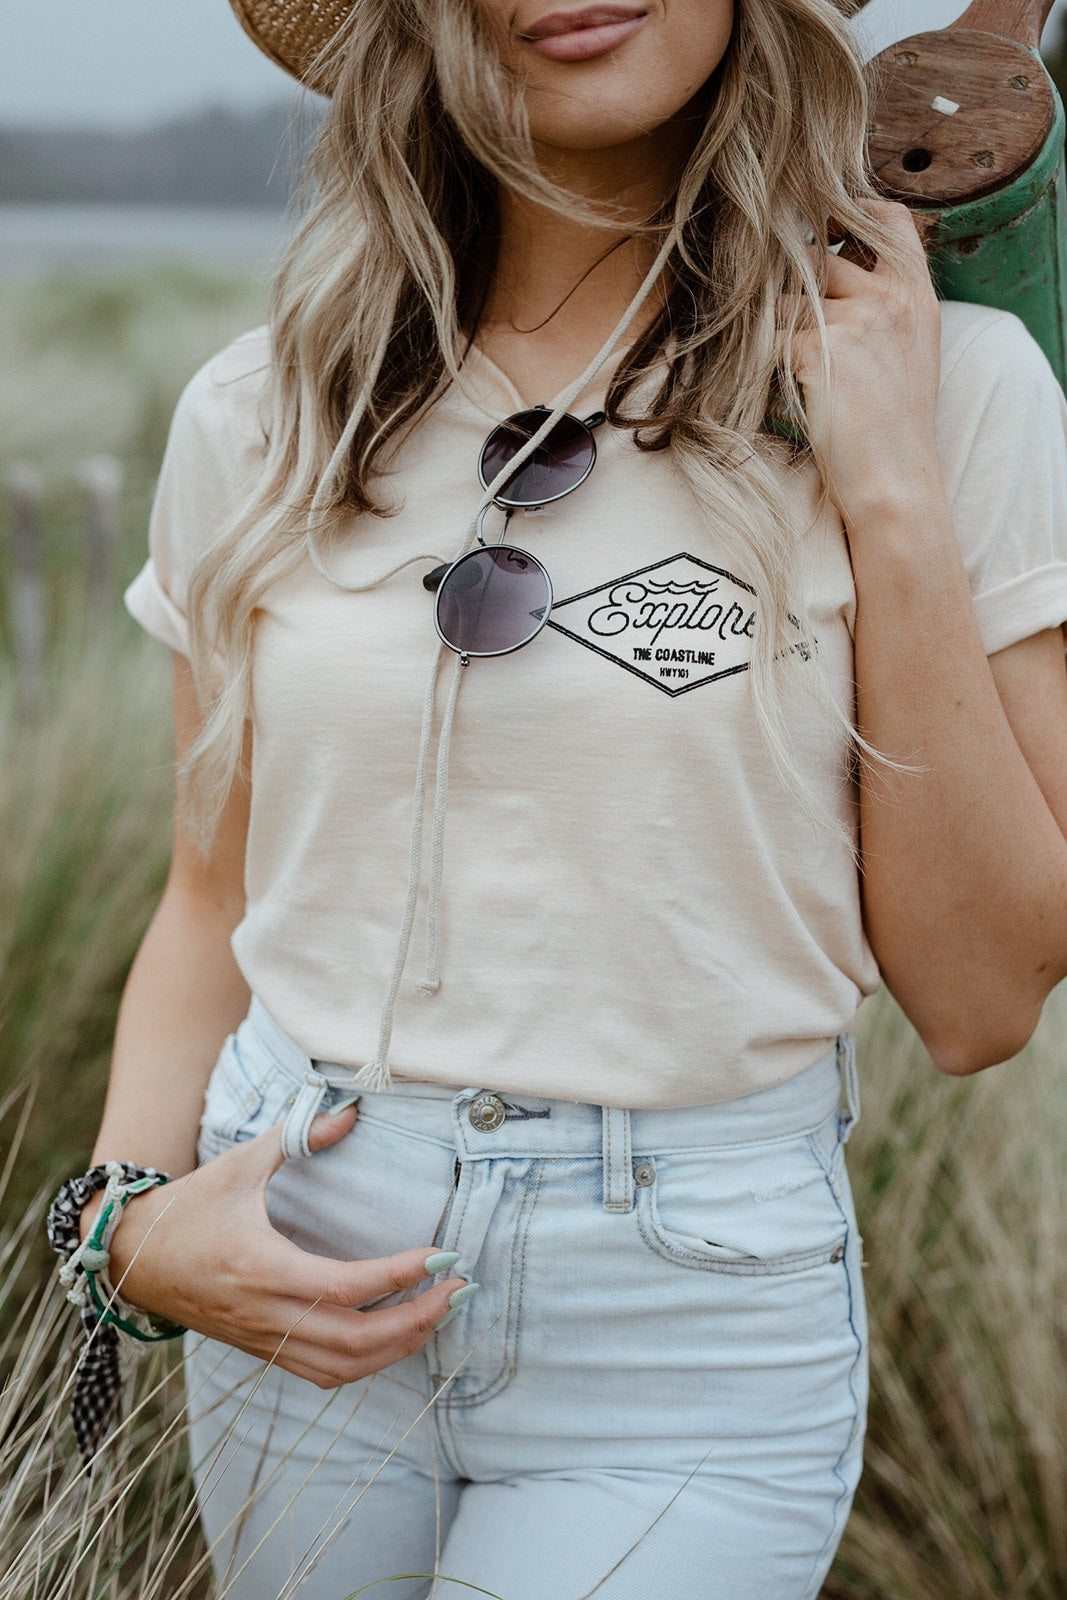 Explore The Coastline Unisex Tee